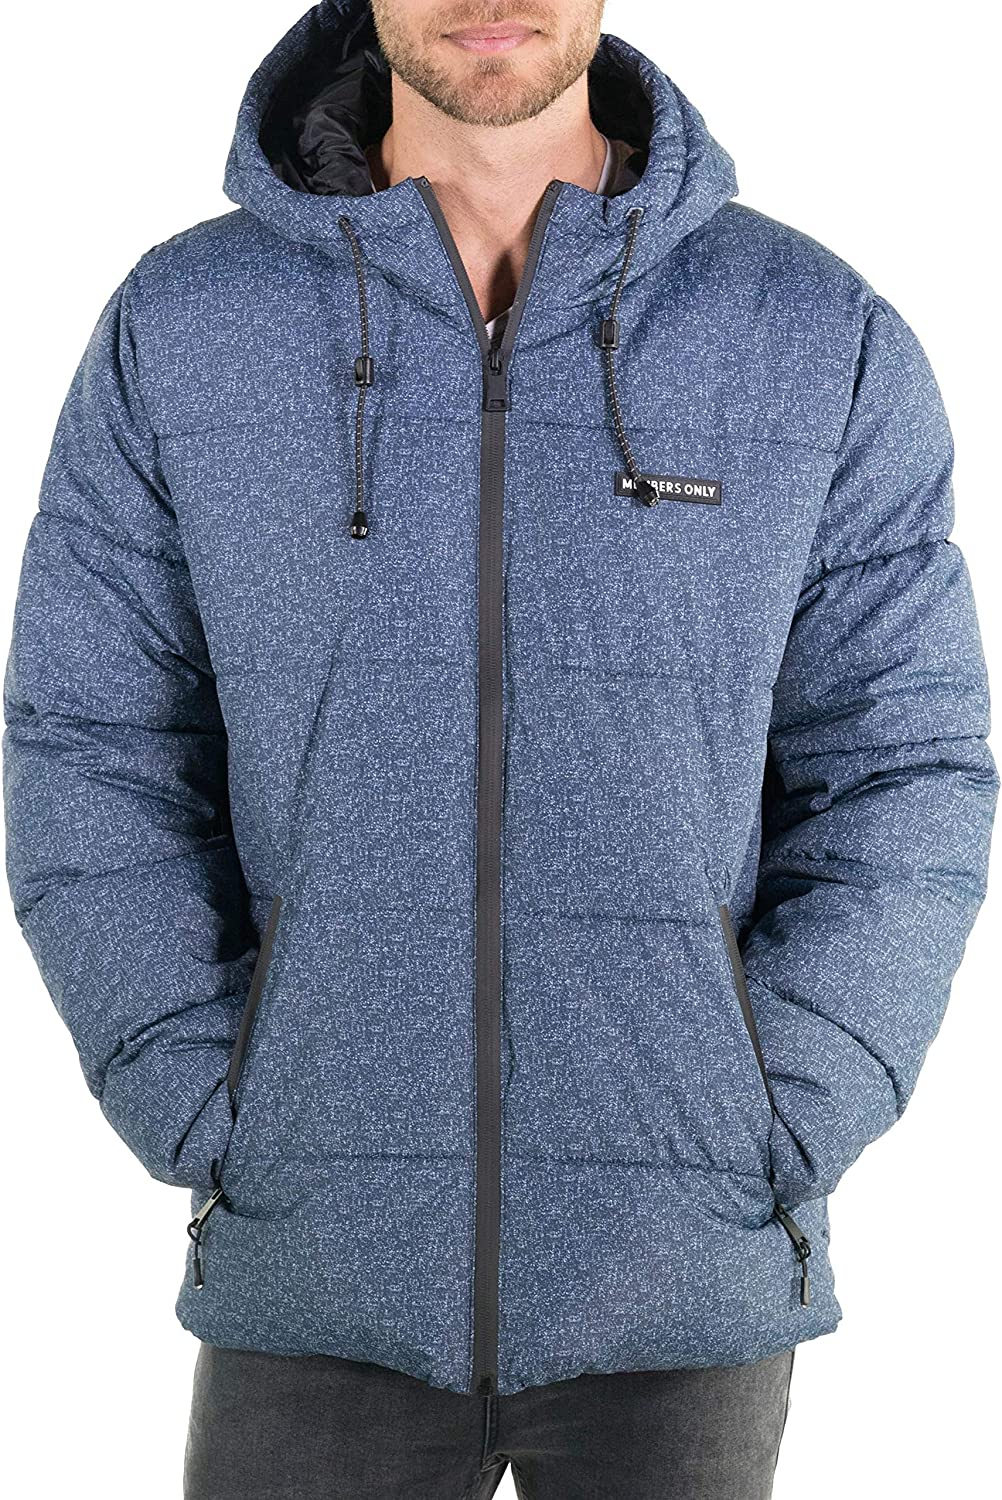 55% OFF Members Only Men's Heather Popular standard Print Jacket with Puffer Hood